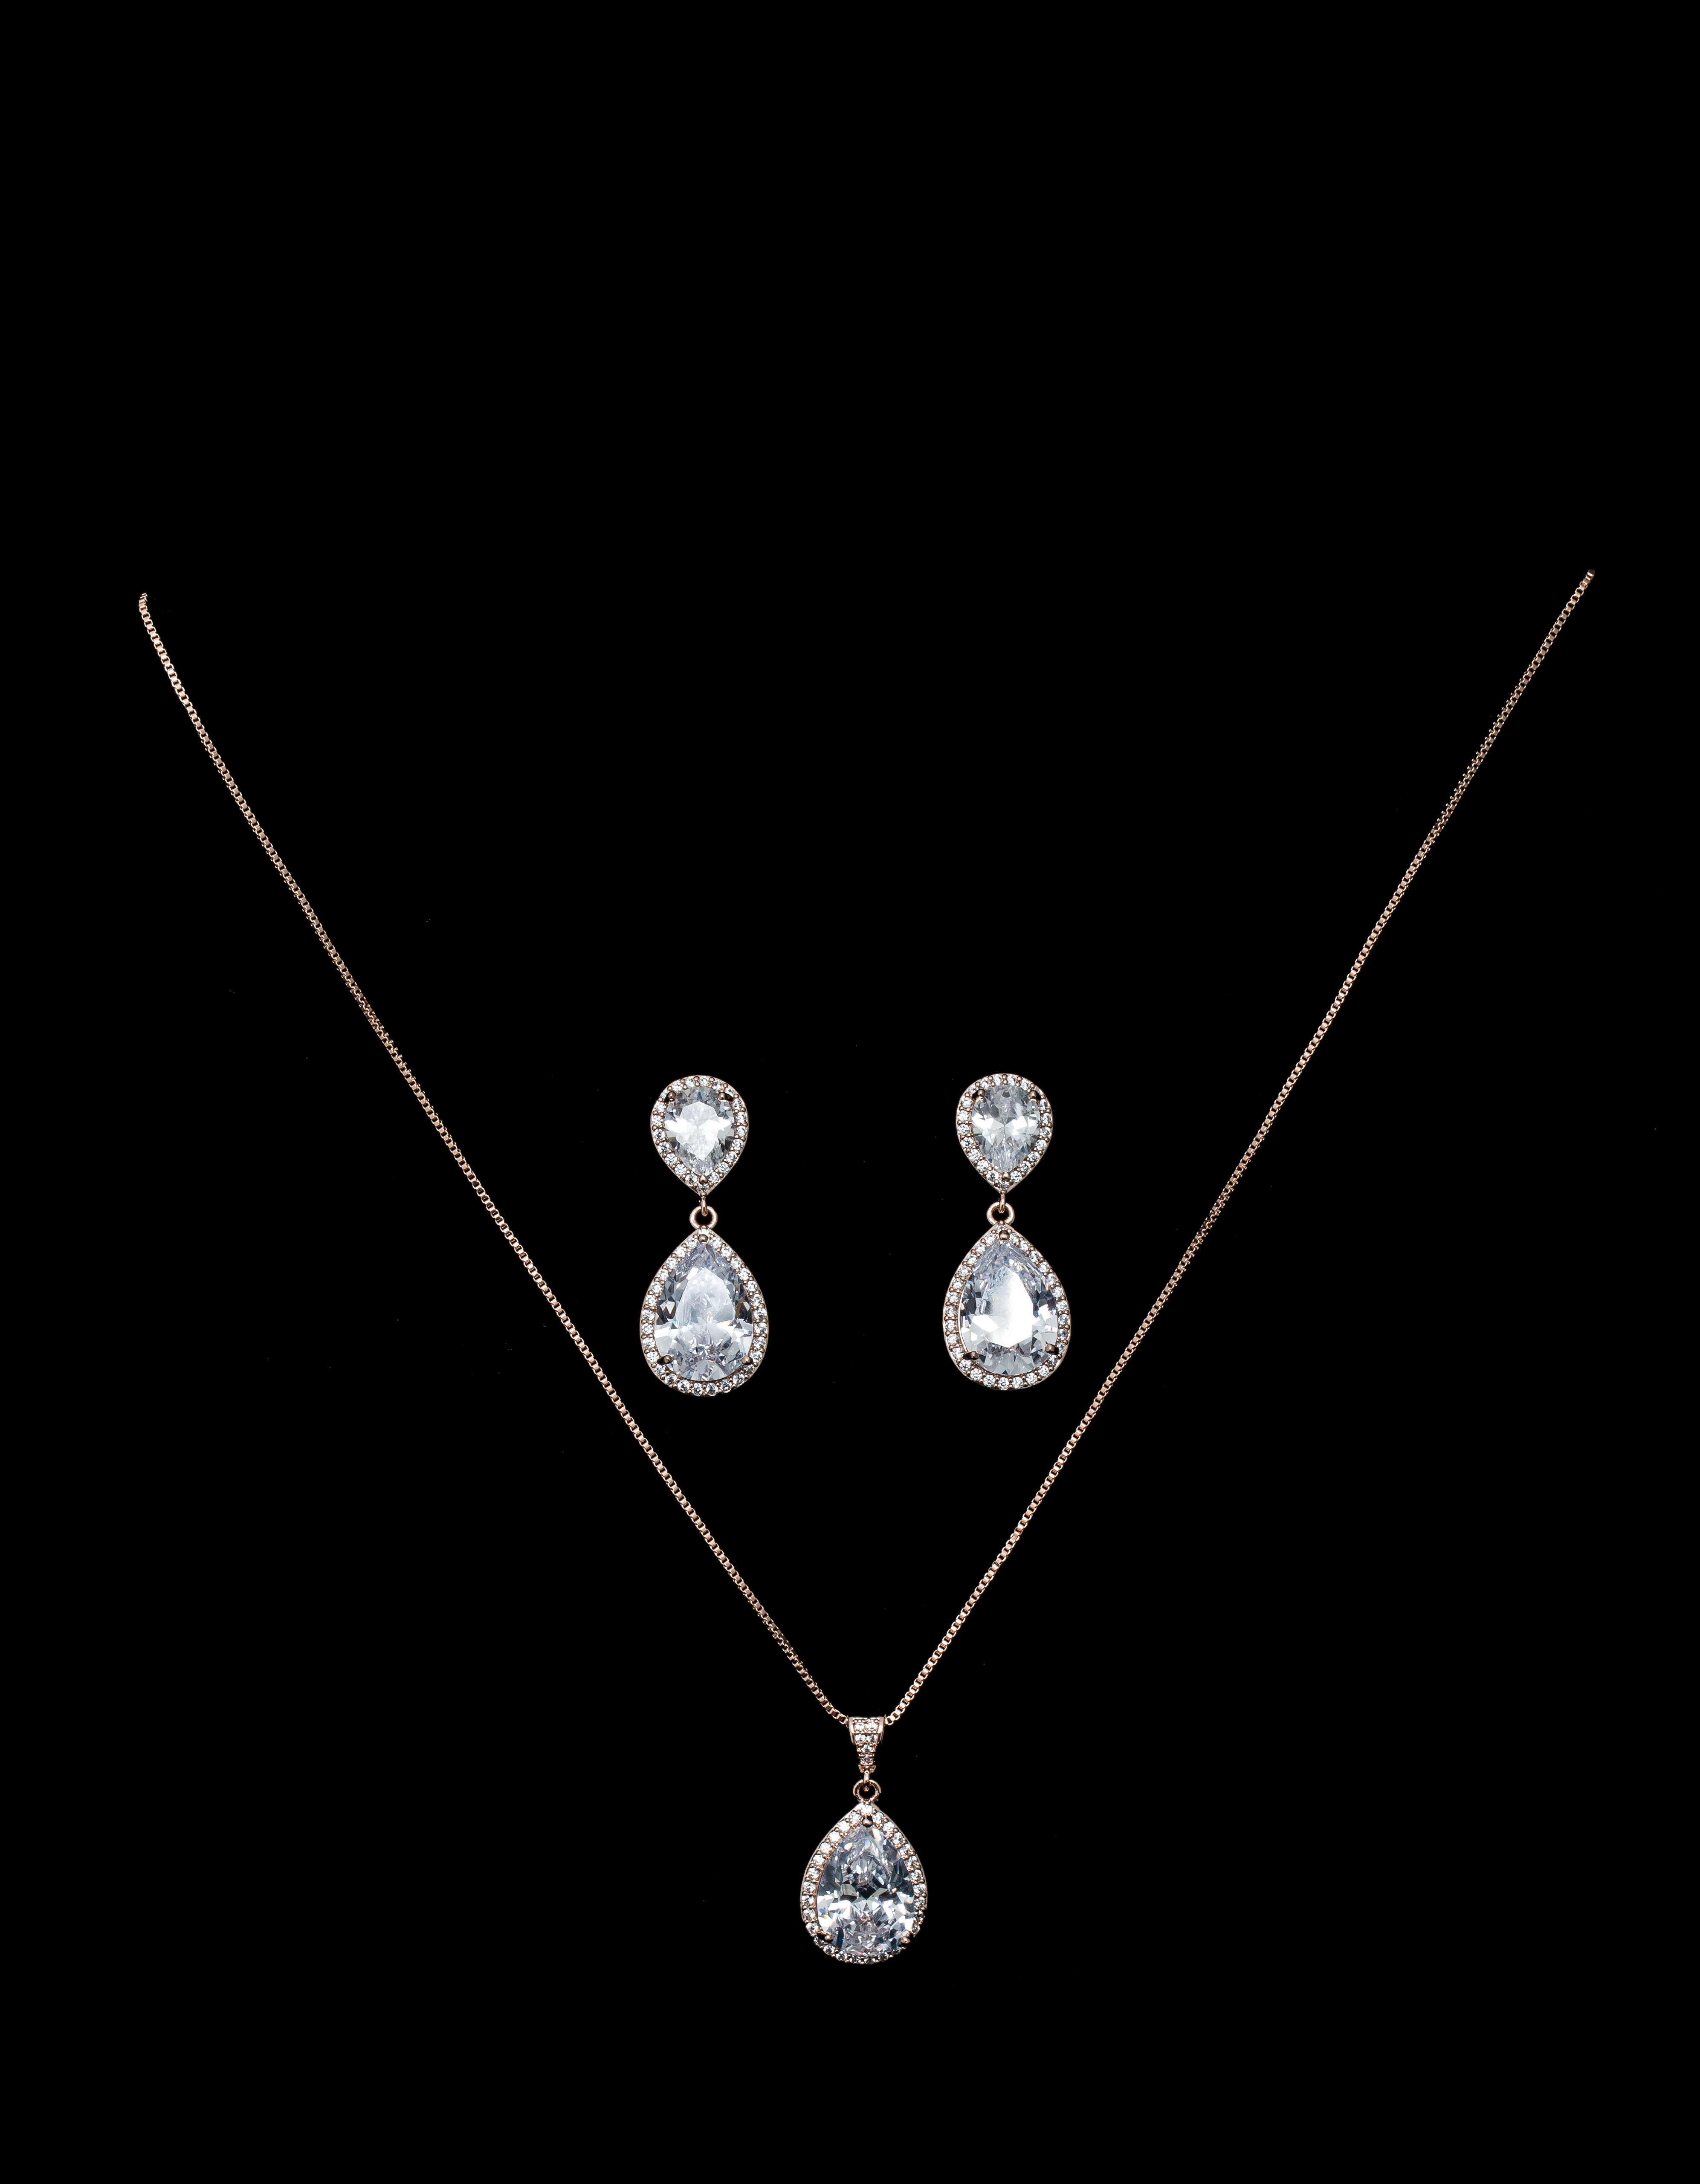 Bridal Classics Necklace Sets ME-1230